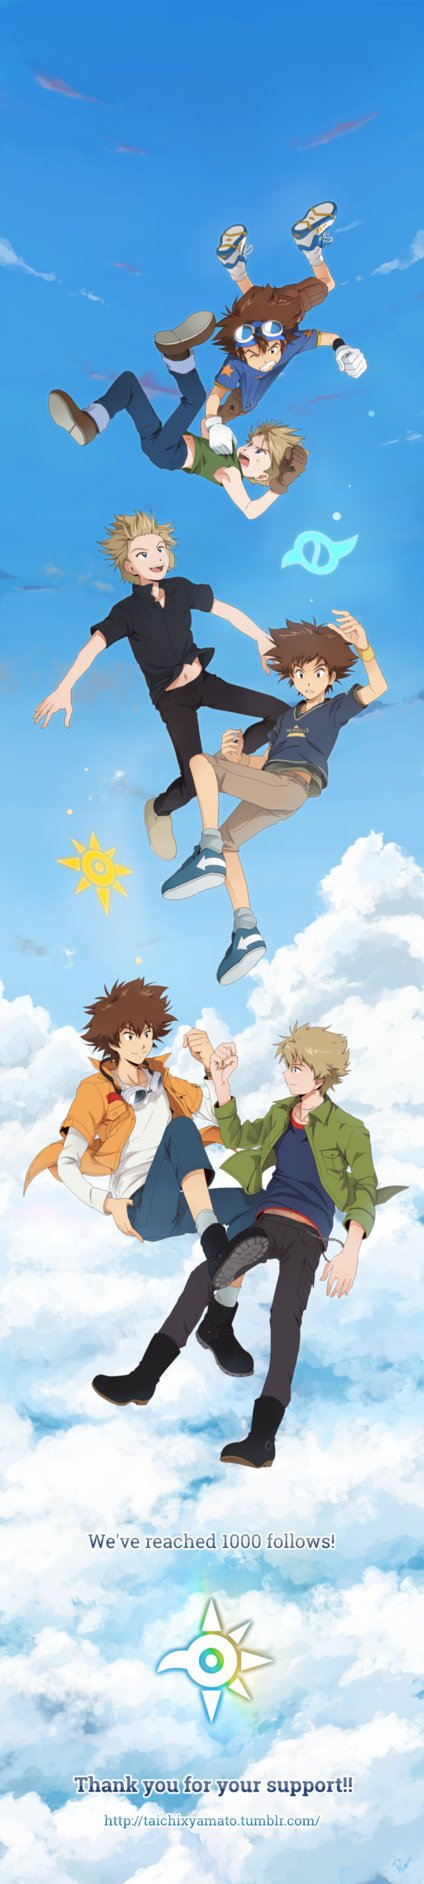 Love the brotherly relationship of Taichi & Yamato, #Digimon